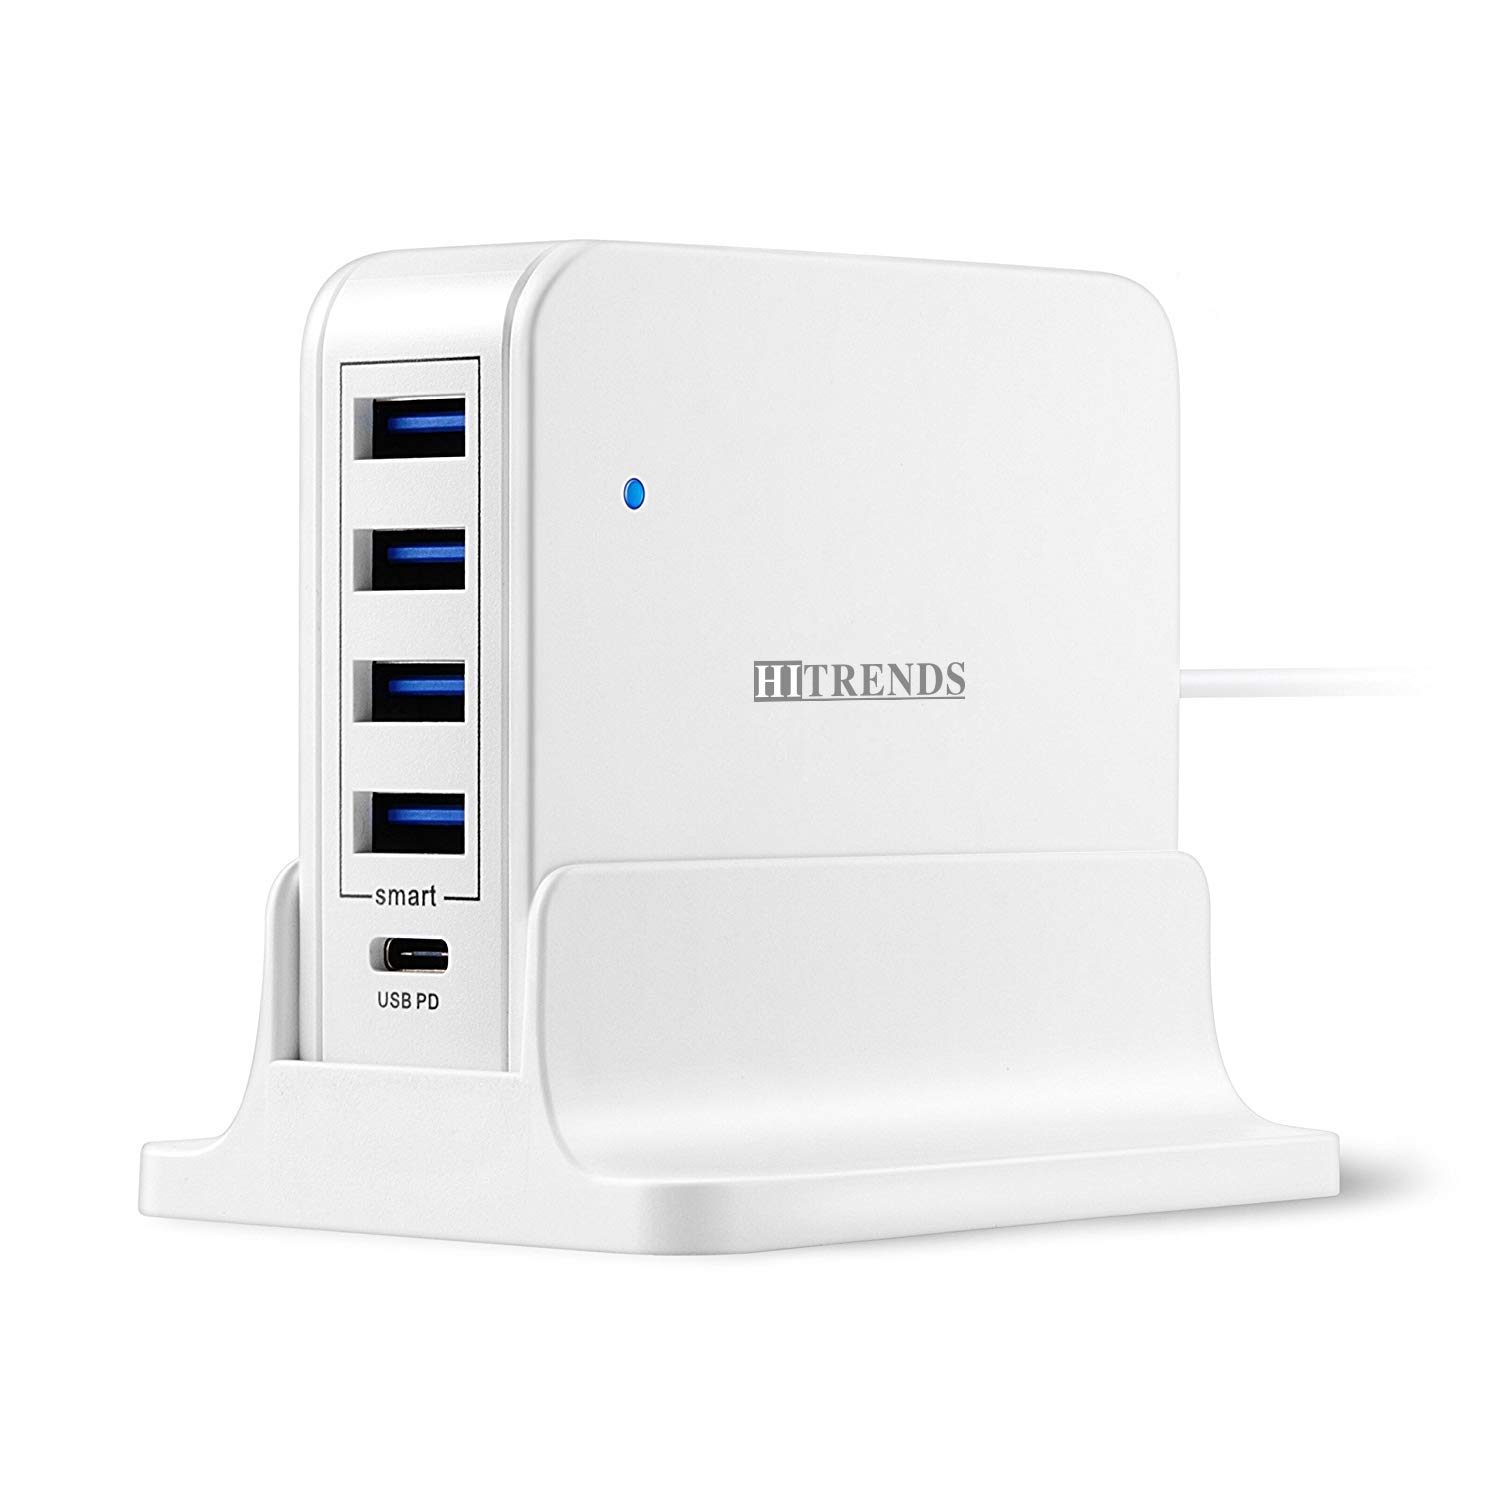 USB Charger Hub with USB Type-C PD Port(45W Max), Desktop Charging Station with 4 USB Ports (5V/2.4A), Multi-Port Charging Hub for MacBook Pro/Air, iPad Pro, Laptops, Tablets & Multiple Devices